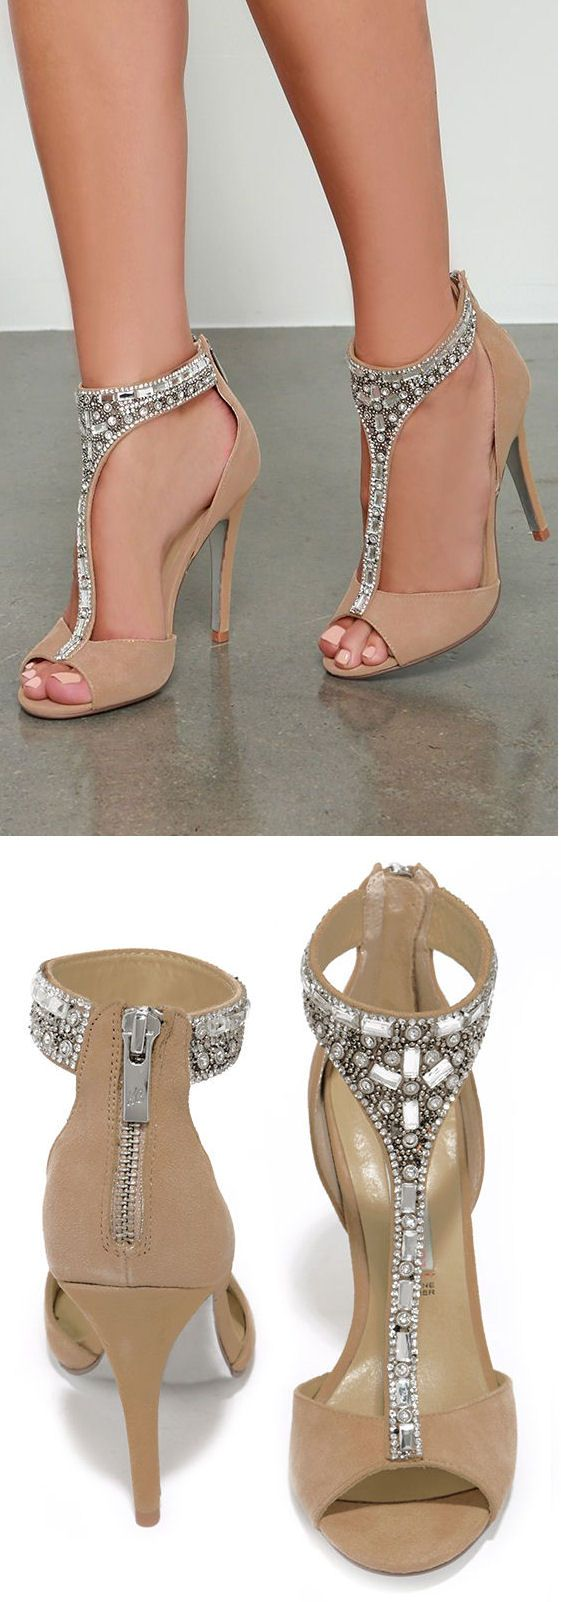 Nude Suede Bejeweled Heels ❤︎ #wedding #shoes #inspiration